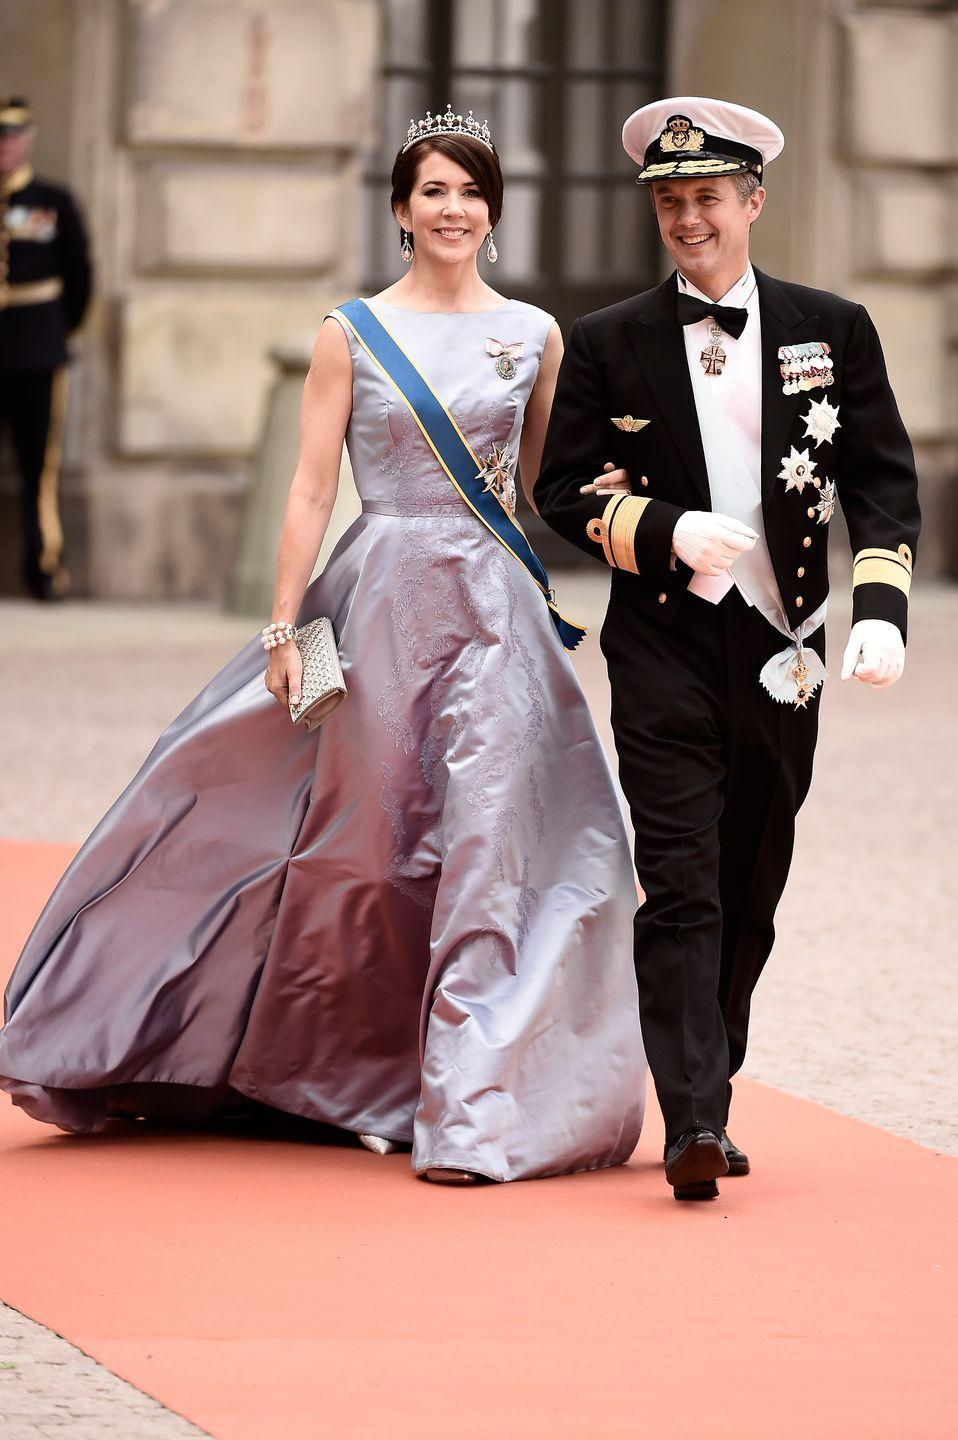 """<p>Before she became Mary, Crown Princess of Denmark, the Australian native met Prince Frederik at a bar in Sydney, Australia. At the time, Donaldson was working in public relations and became a project consultant, and when she met the prince he introduced himself simply as """"Fred."""" Four years later, the royal couple tied the knot in Copenhagen. </p>"""